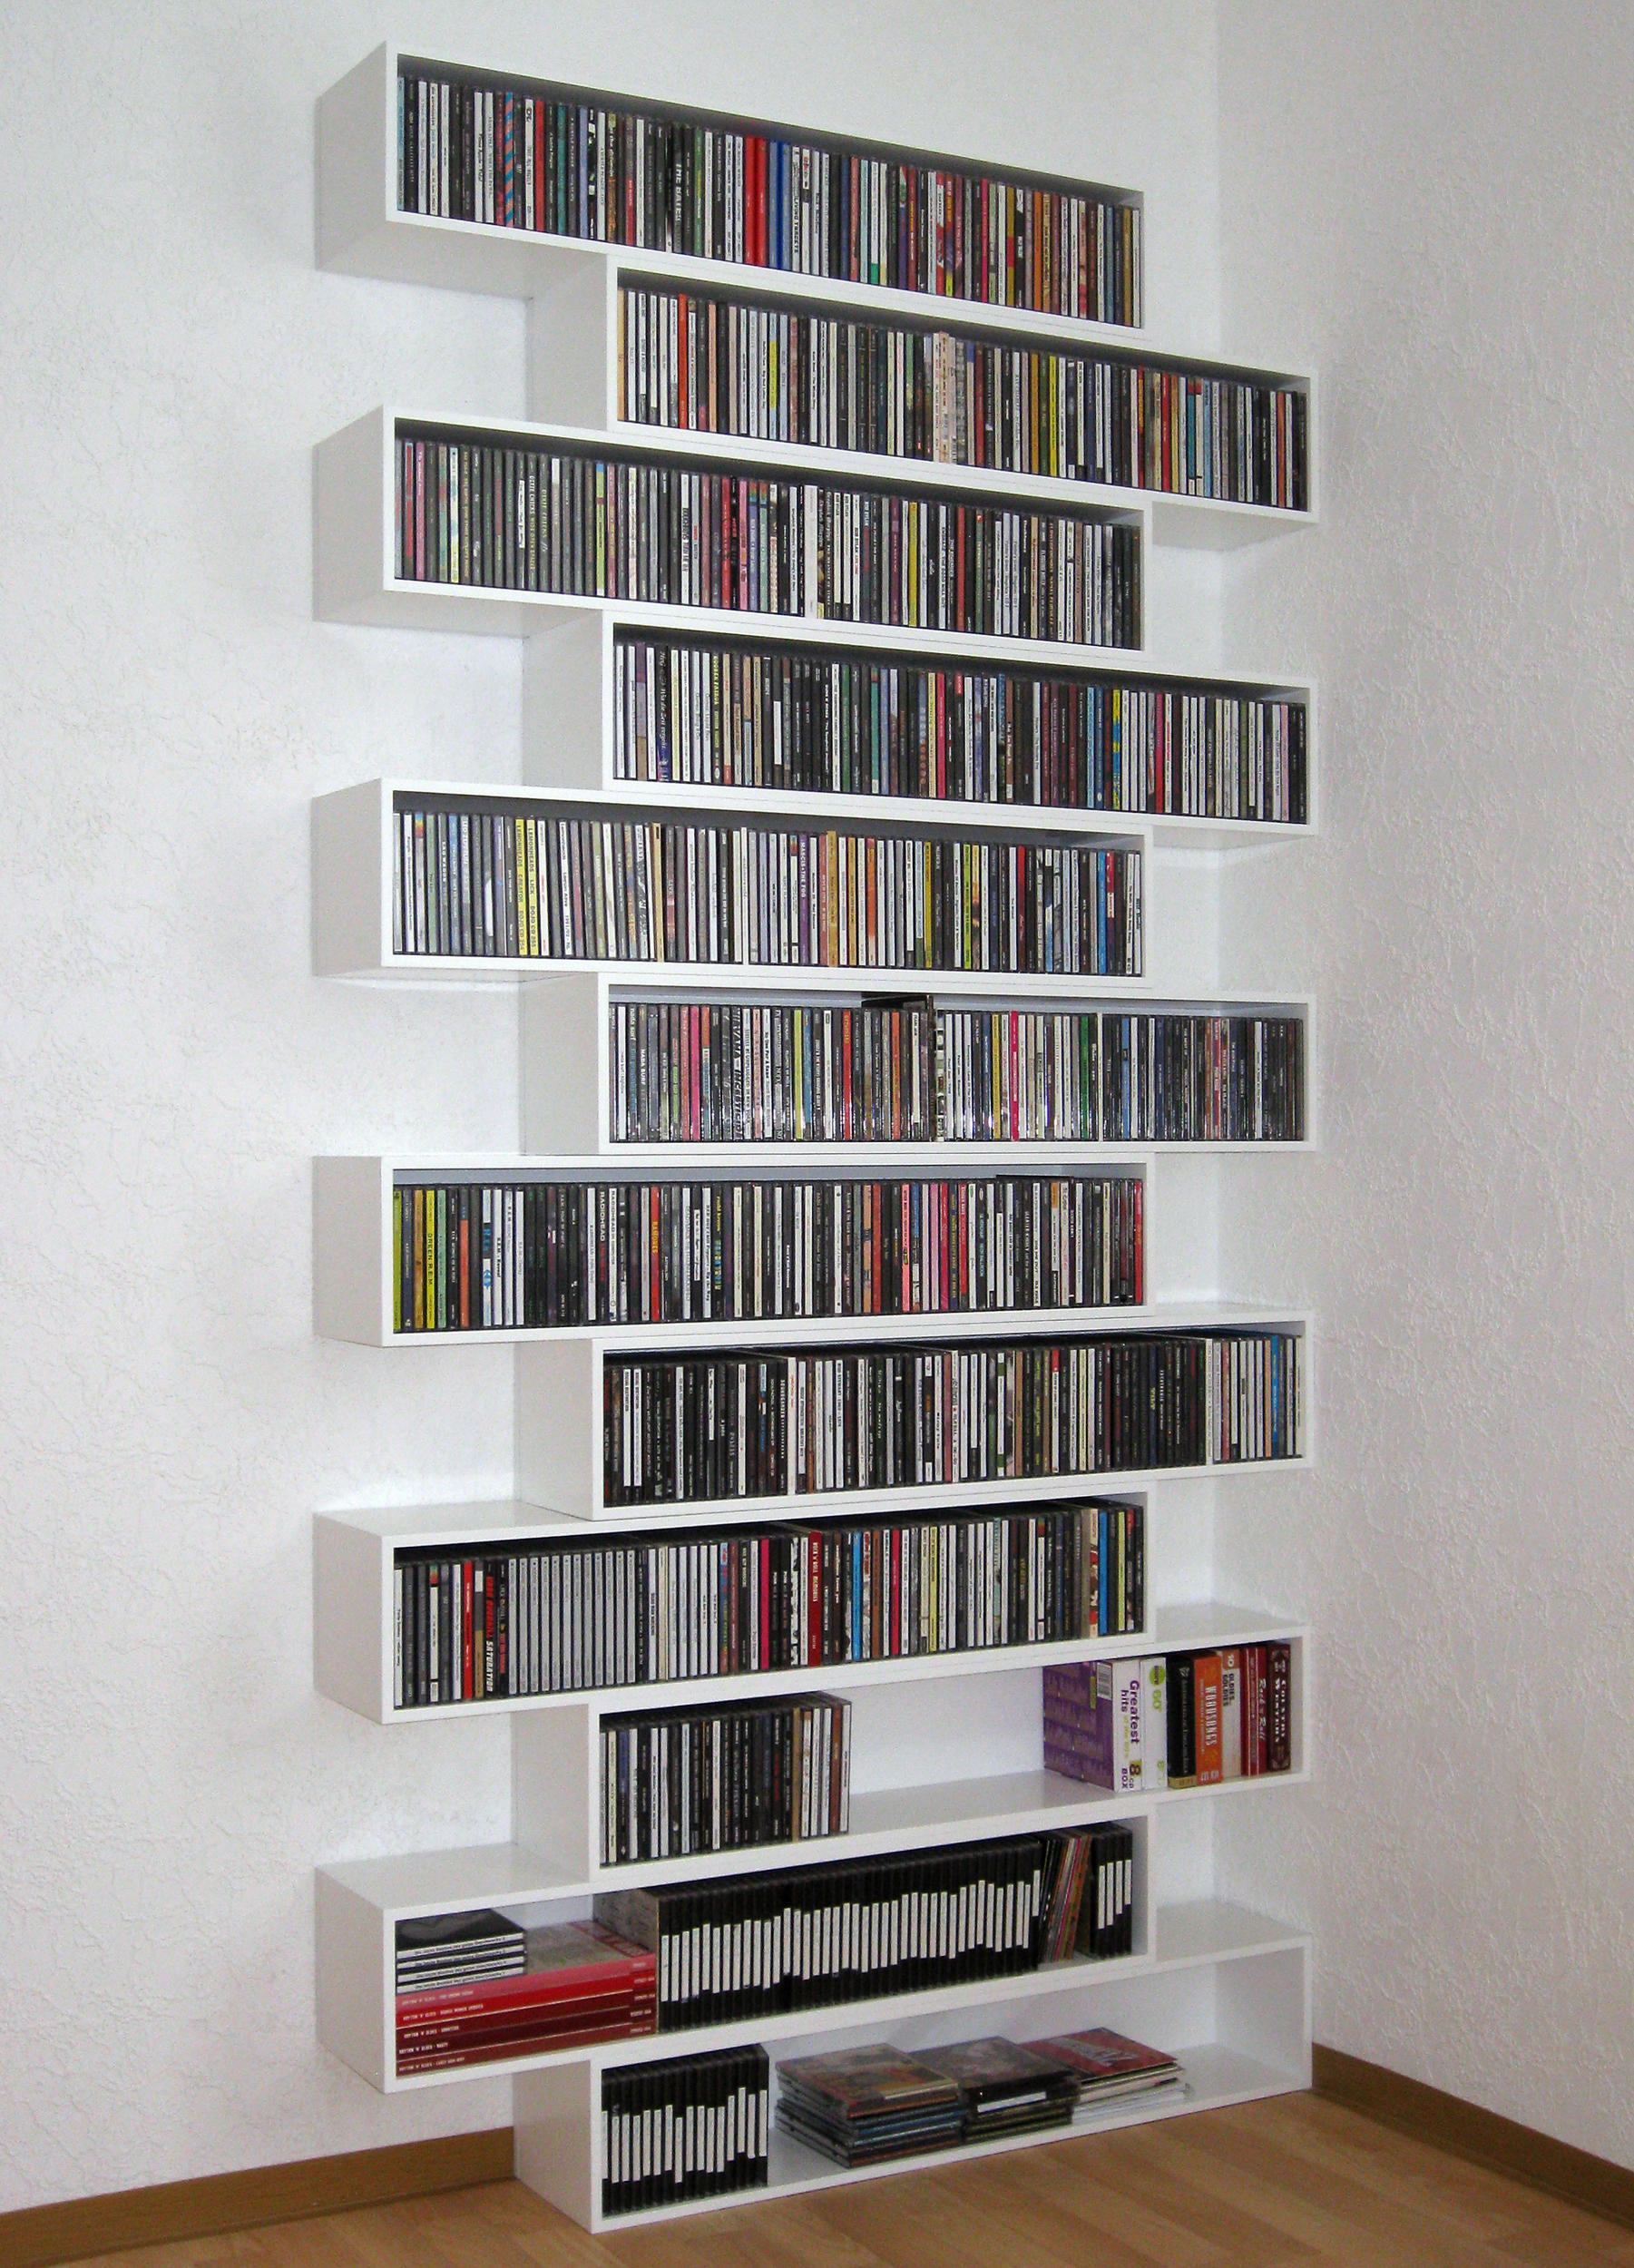 Flaschen Aufbewahrung Regal Cubit Shelving System Cd Racks From Cubit Architonic